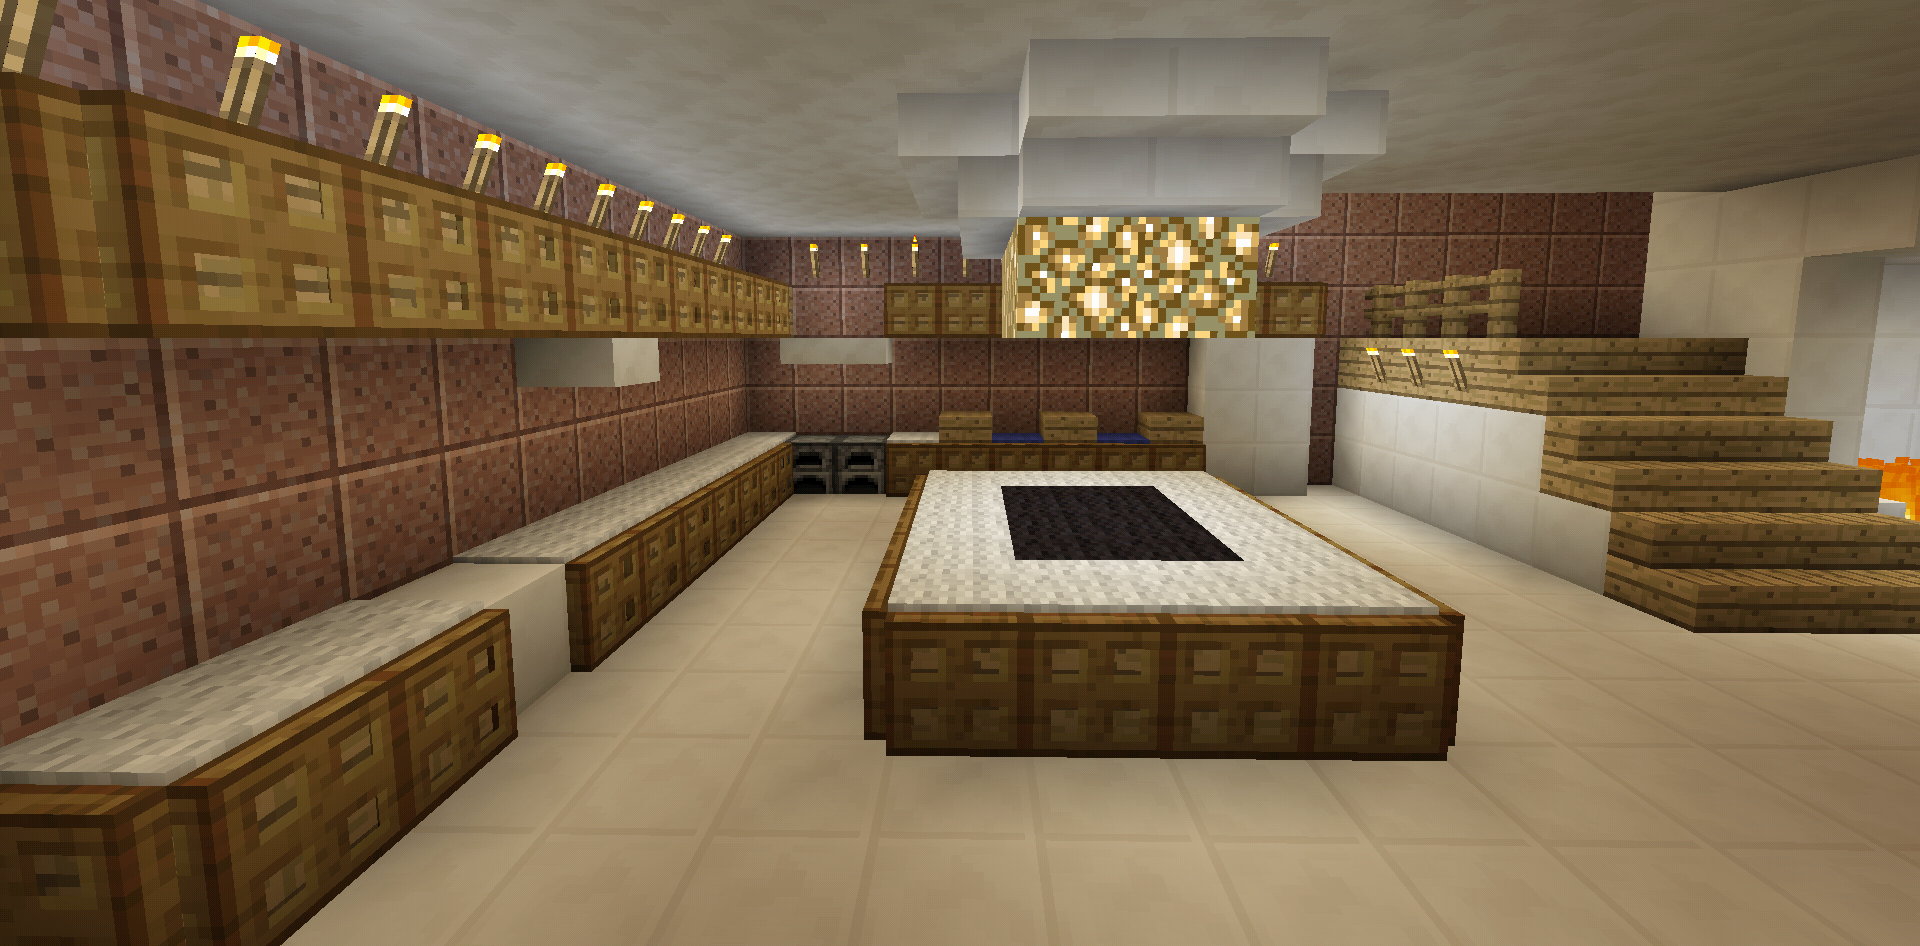 Minecraft Kitchen Stove Sink Fridge | Minecraft kitchen ...